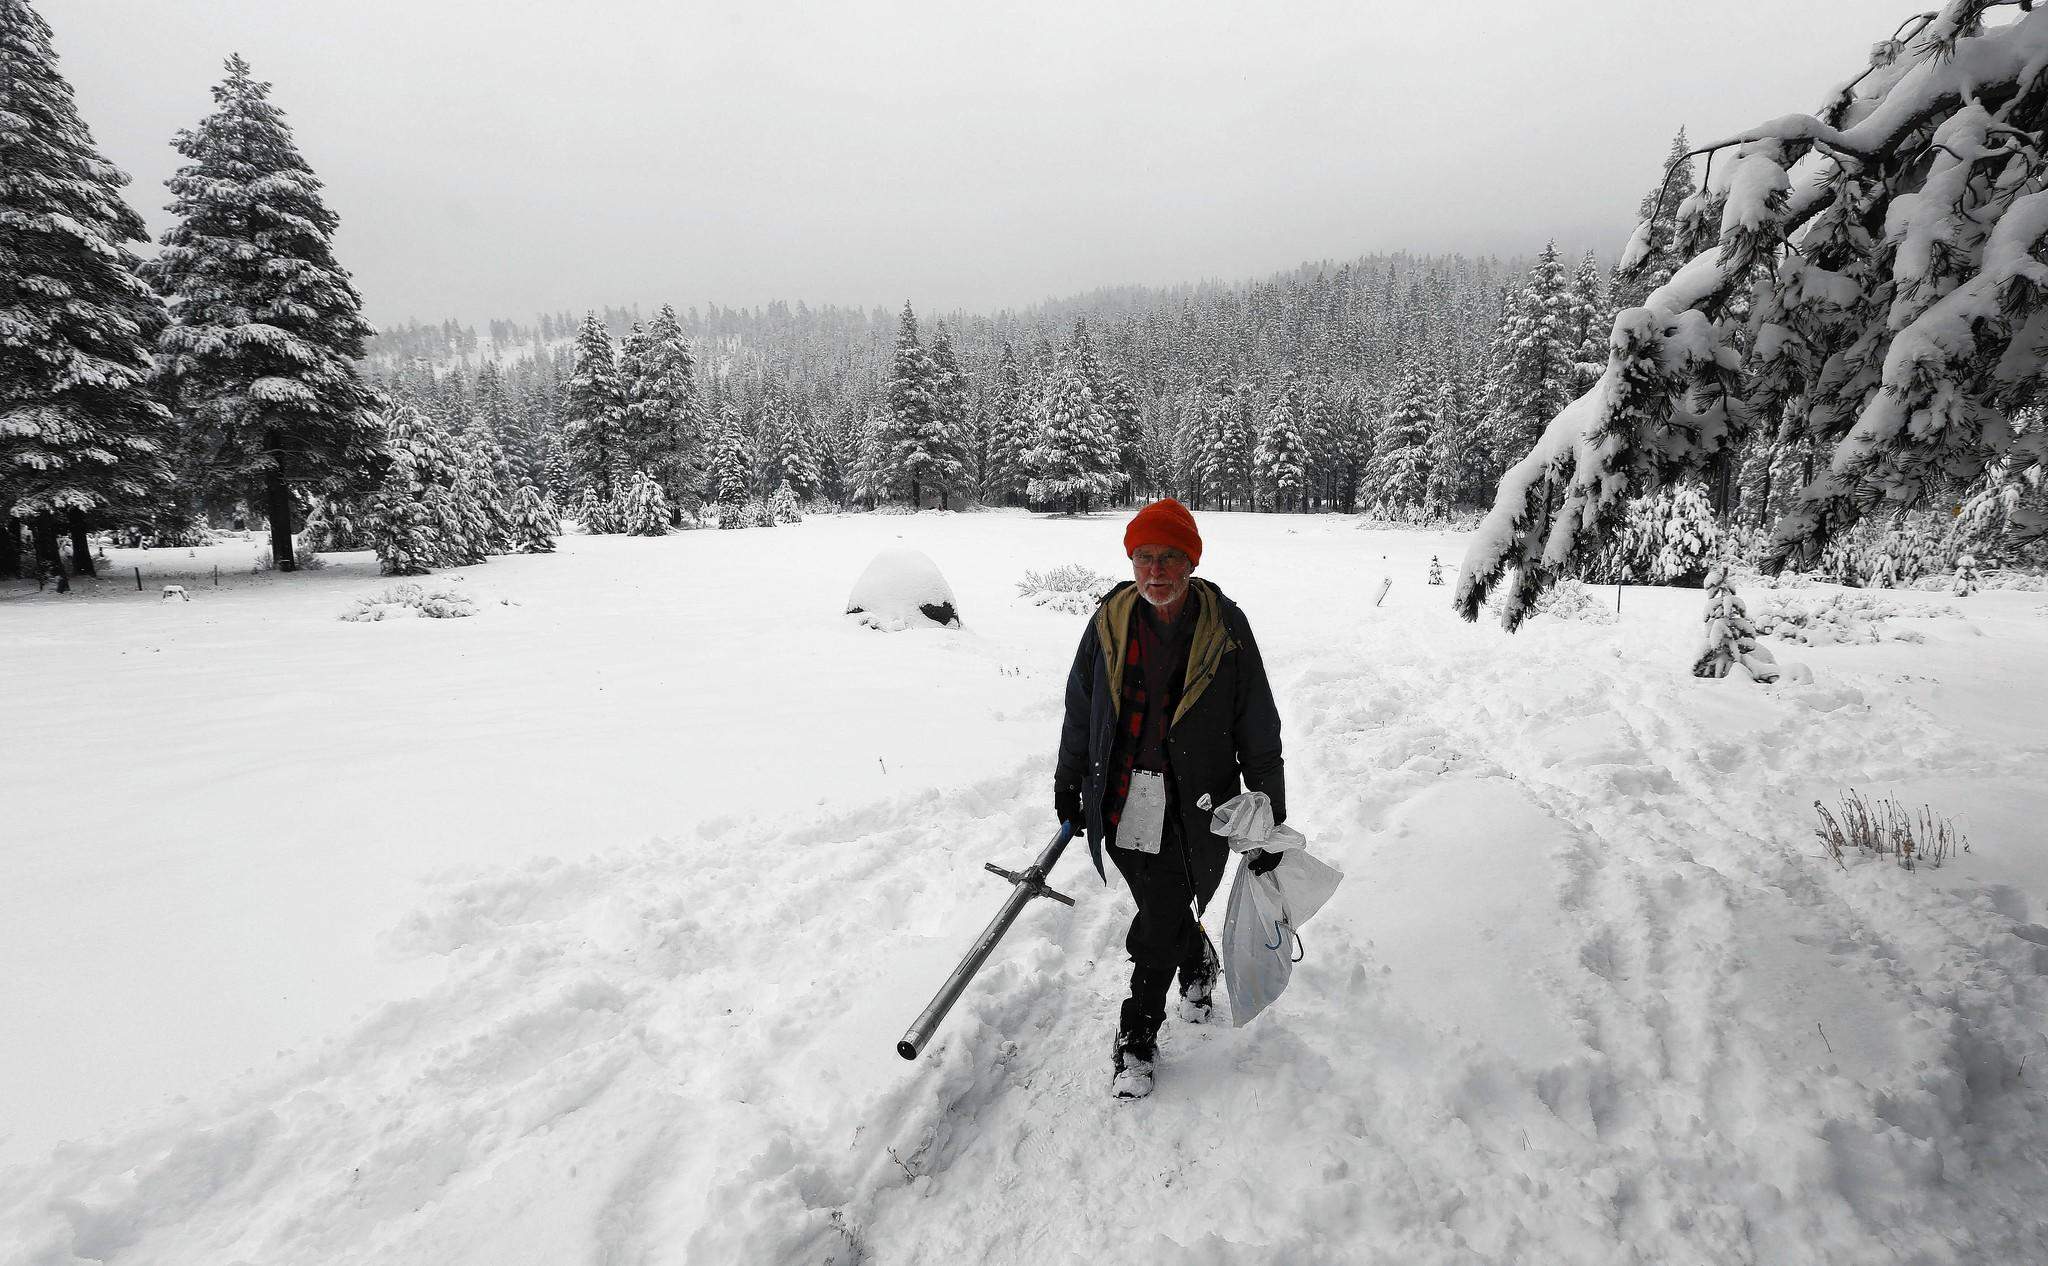 Frank Gehrke, chief of the California Cooperative Snow Survey Program for the Department of Water Resources, leaves a snow-covered meadow after the second snow survey of the year near Echo Summit, Calif. Gehrke said that while recent snow fall will help bolster the depleted snowpack, it is not enough to affect the water supply.